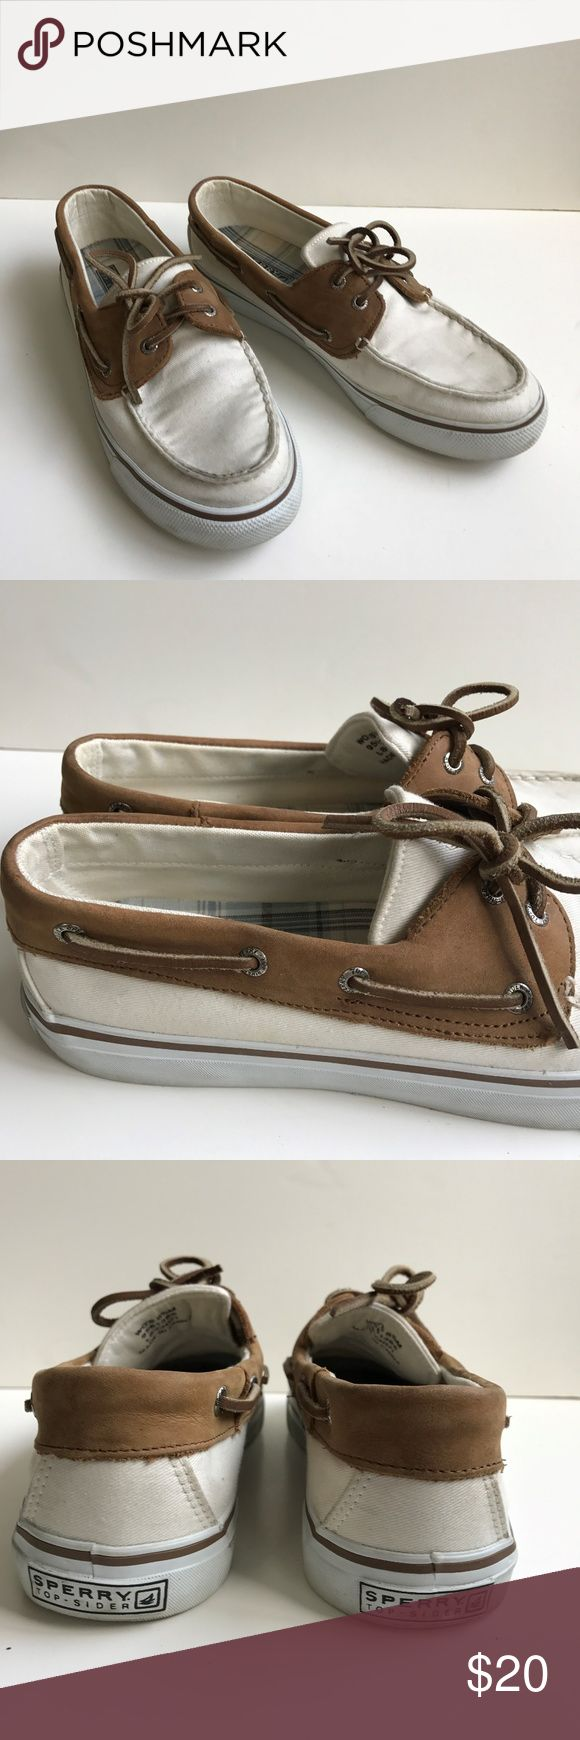 Sperry top sider white boat shoes loafers lace up good condition how it is a bit dusty.  please see pictures. Sperry Shoes Boat Shoes